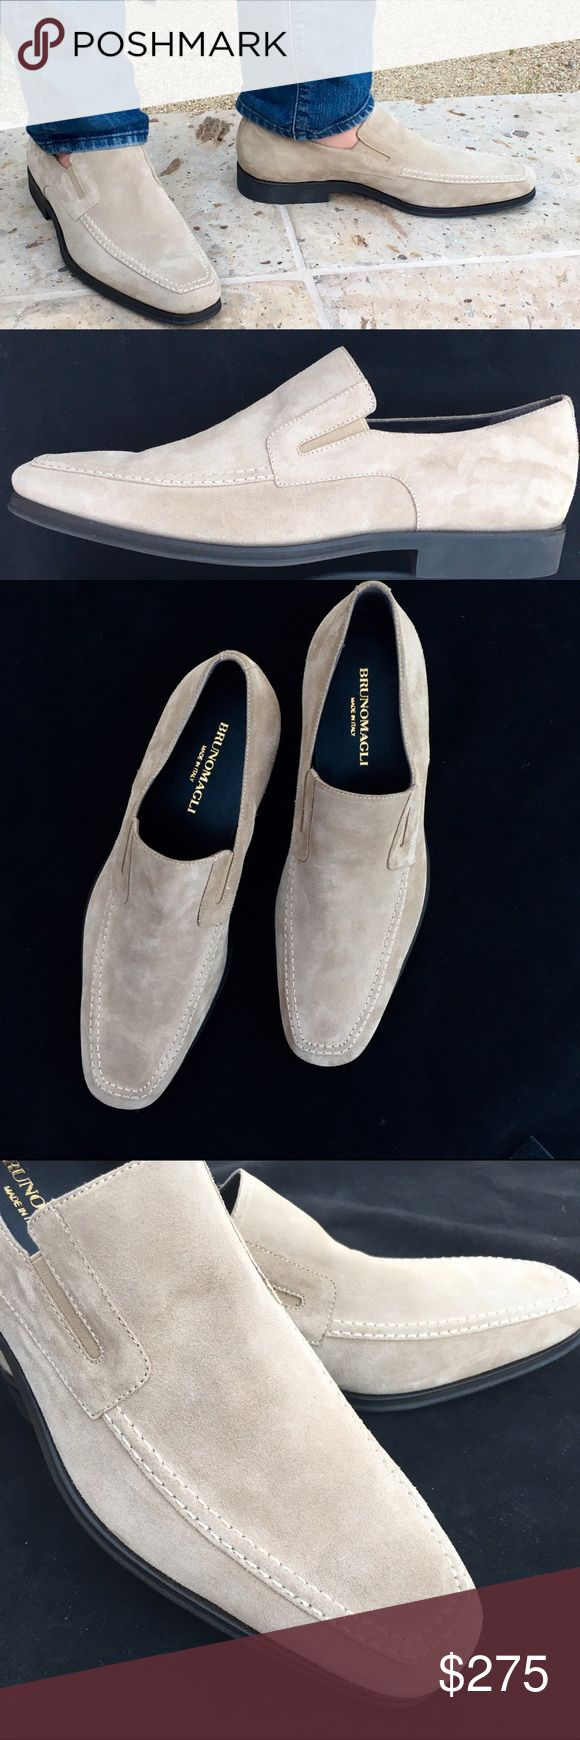 Bruno Magli Suede Leather, Beige Slip-on Loafers Beautiful brand new Bruno Magli, Raging, soft suede slip-on men's loafers, beige. Made in Italy. Never been worn. Size 9.5 Bruno Magli Shoes Loafers & Slip-Ons